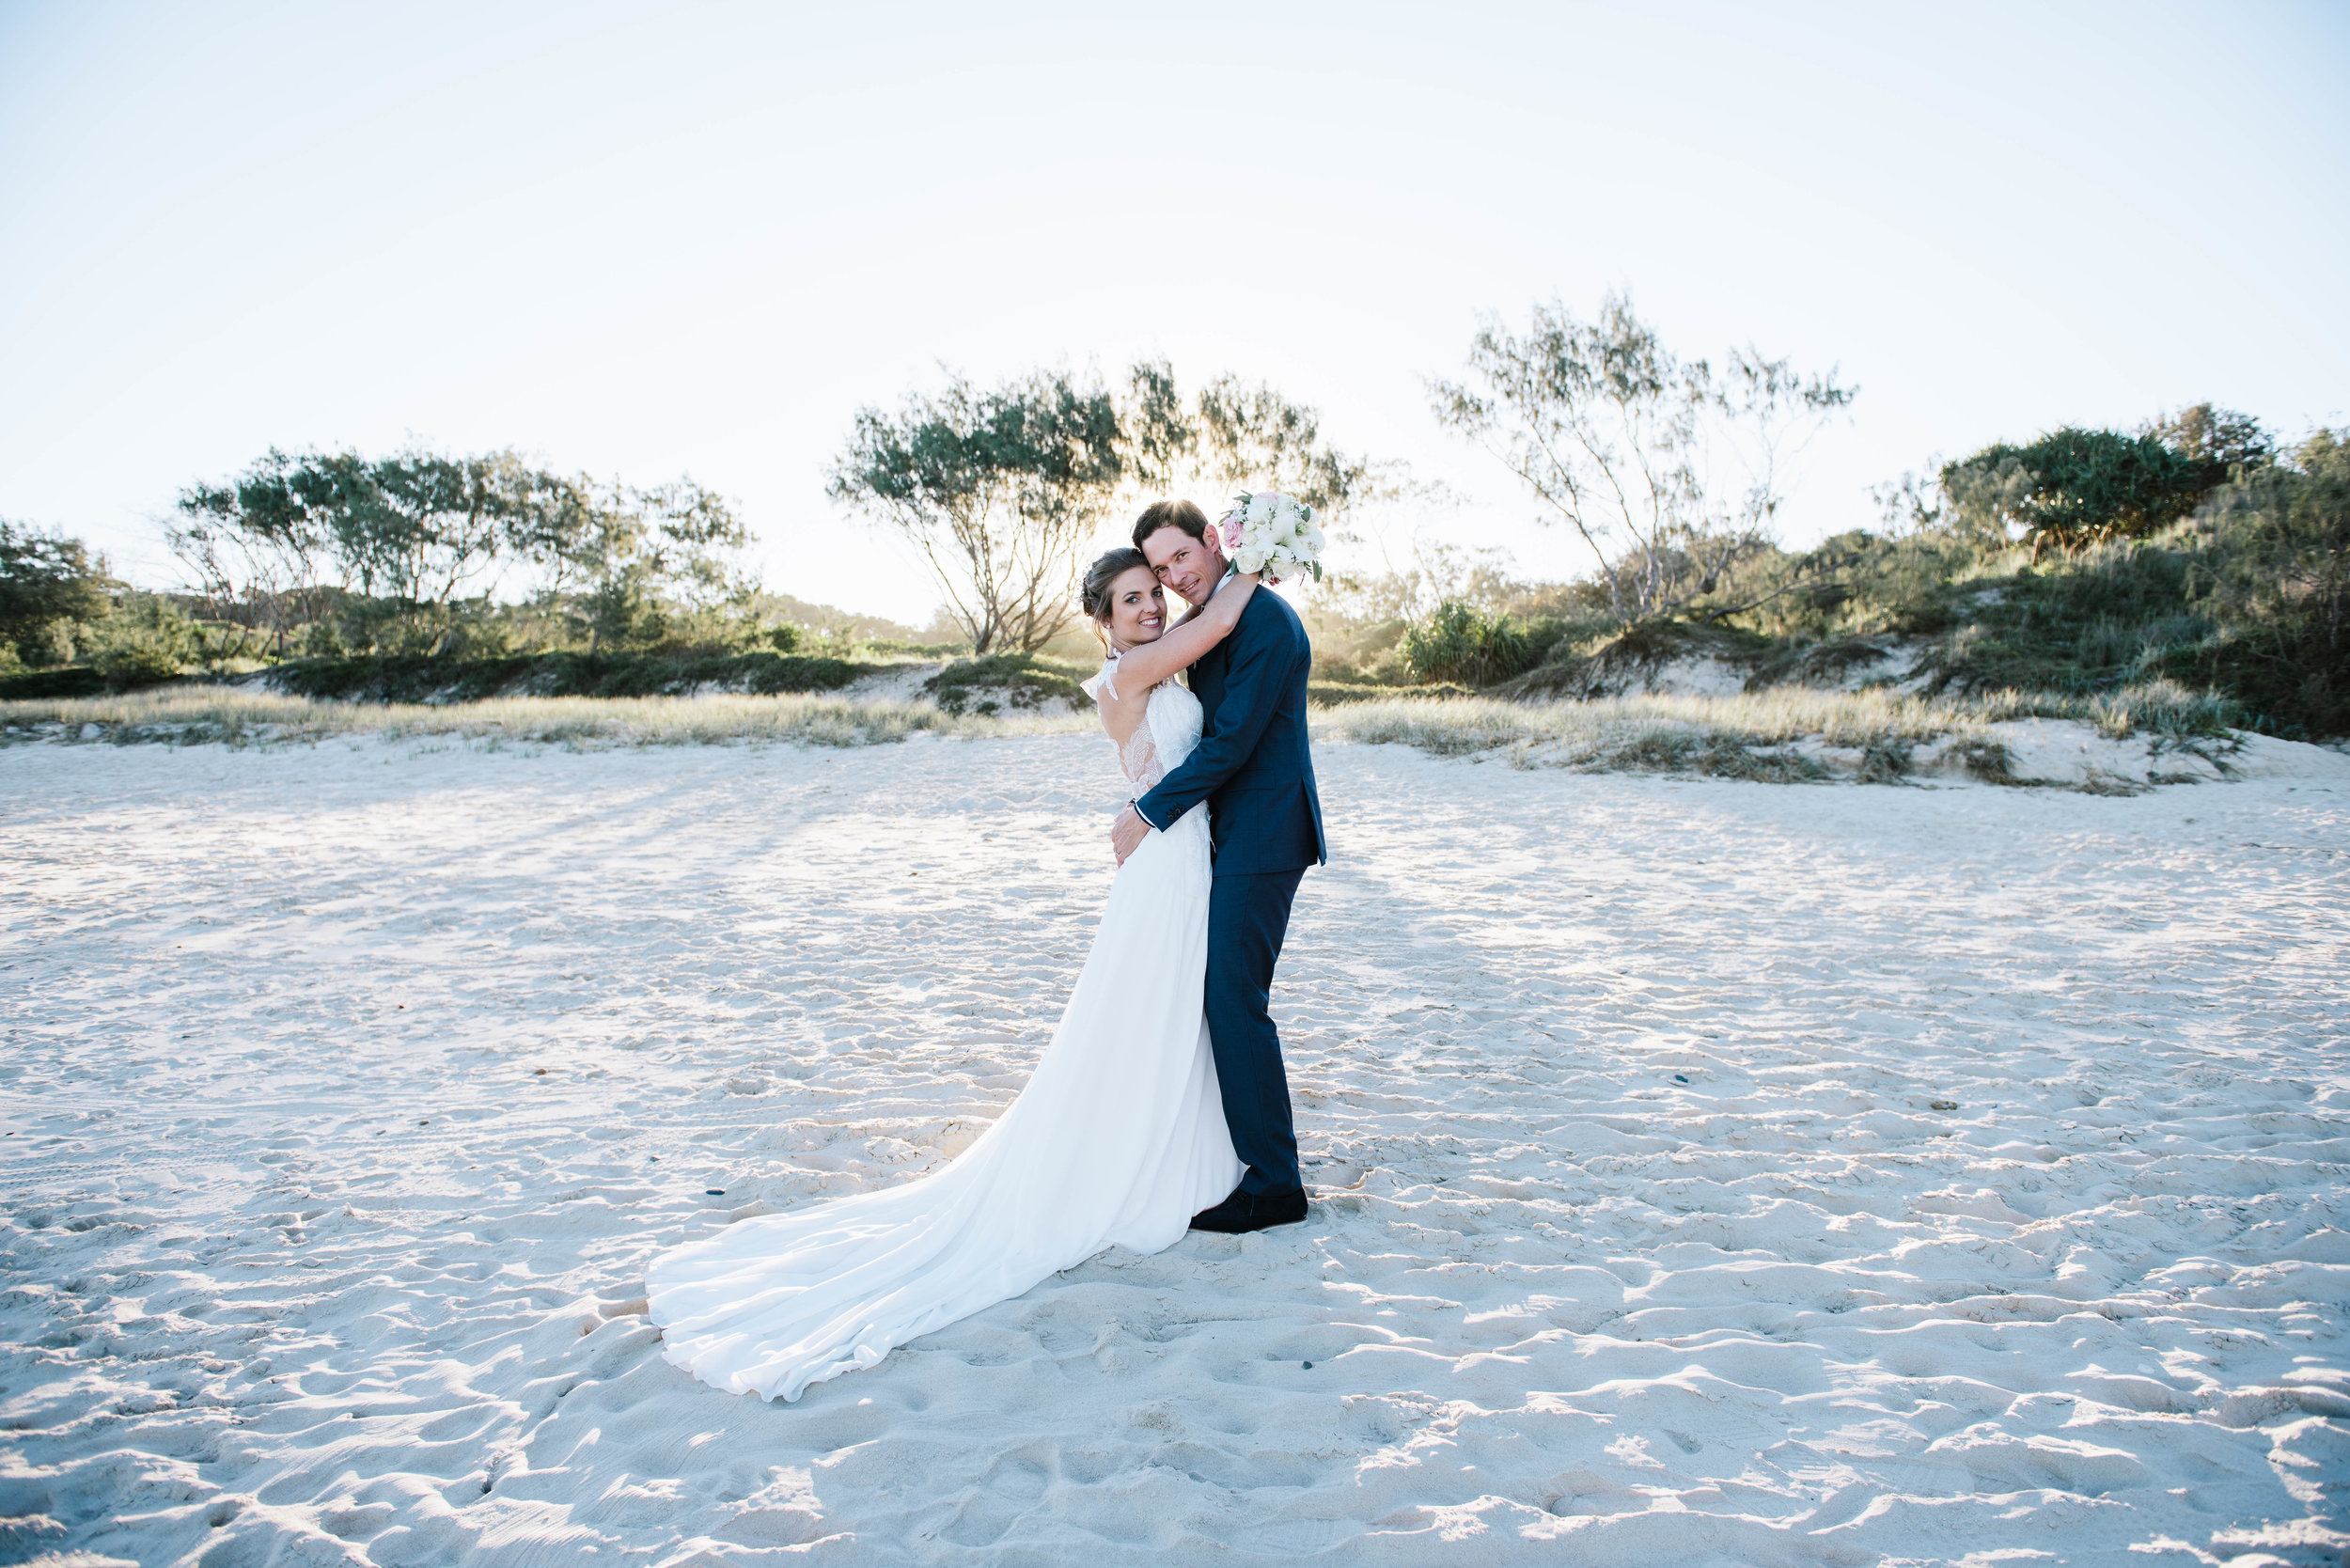 Am and Sam- skyla sage photography weddings, families, byron bay,tweed coast,kingscliff,cabarita,gold coast-401.jpg